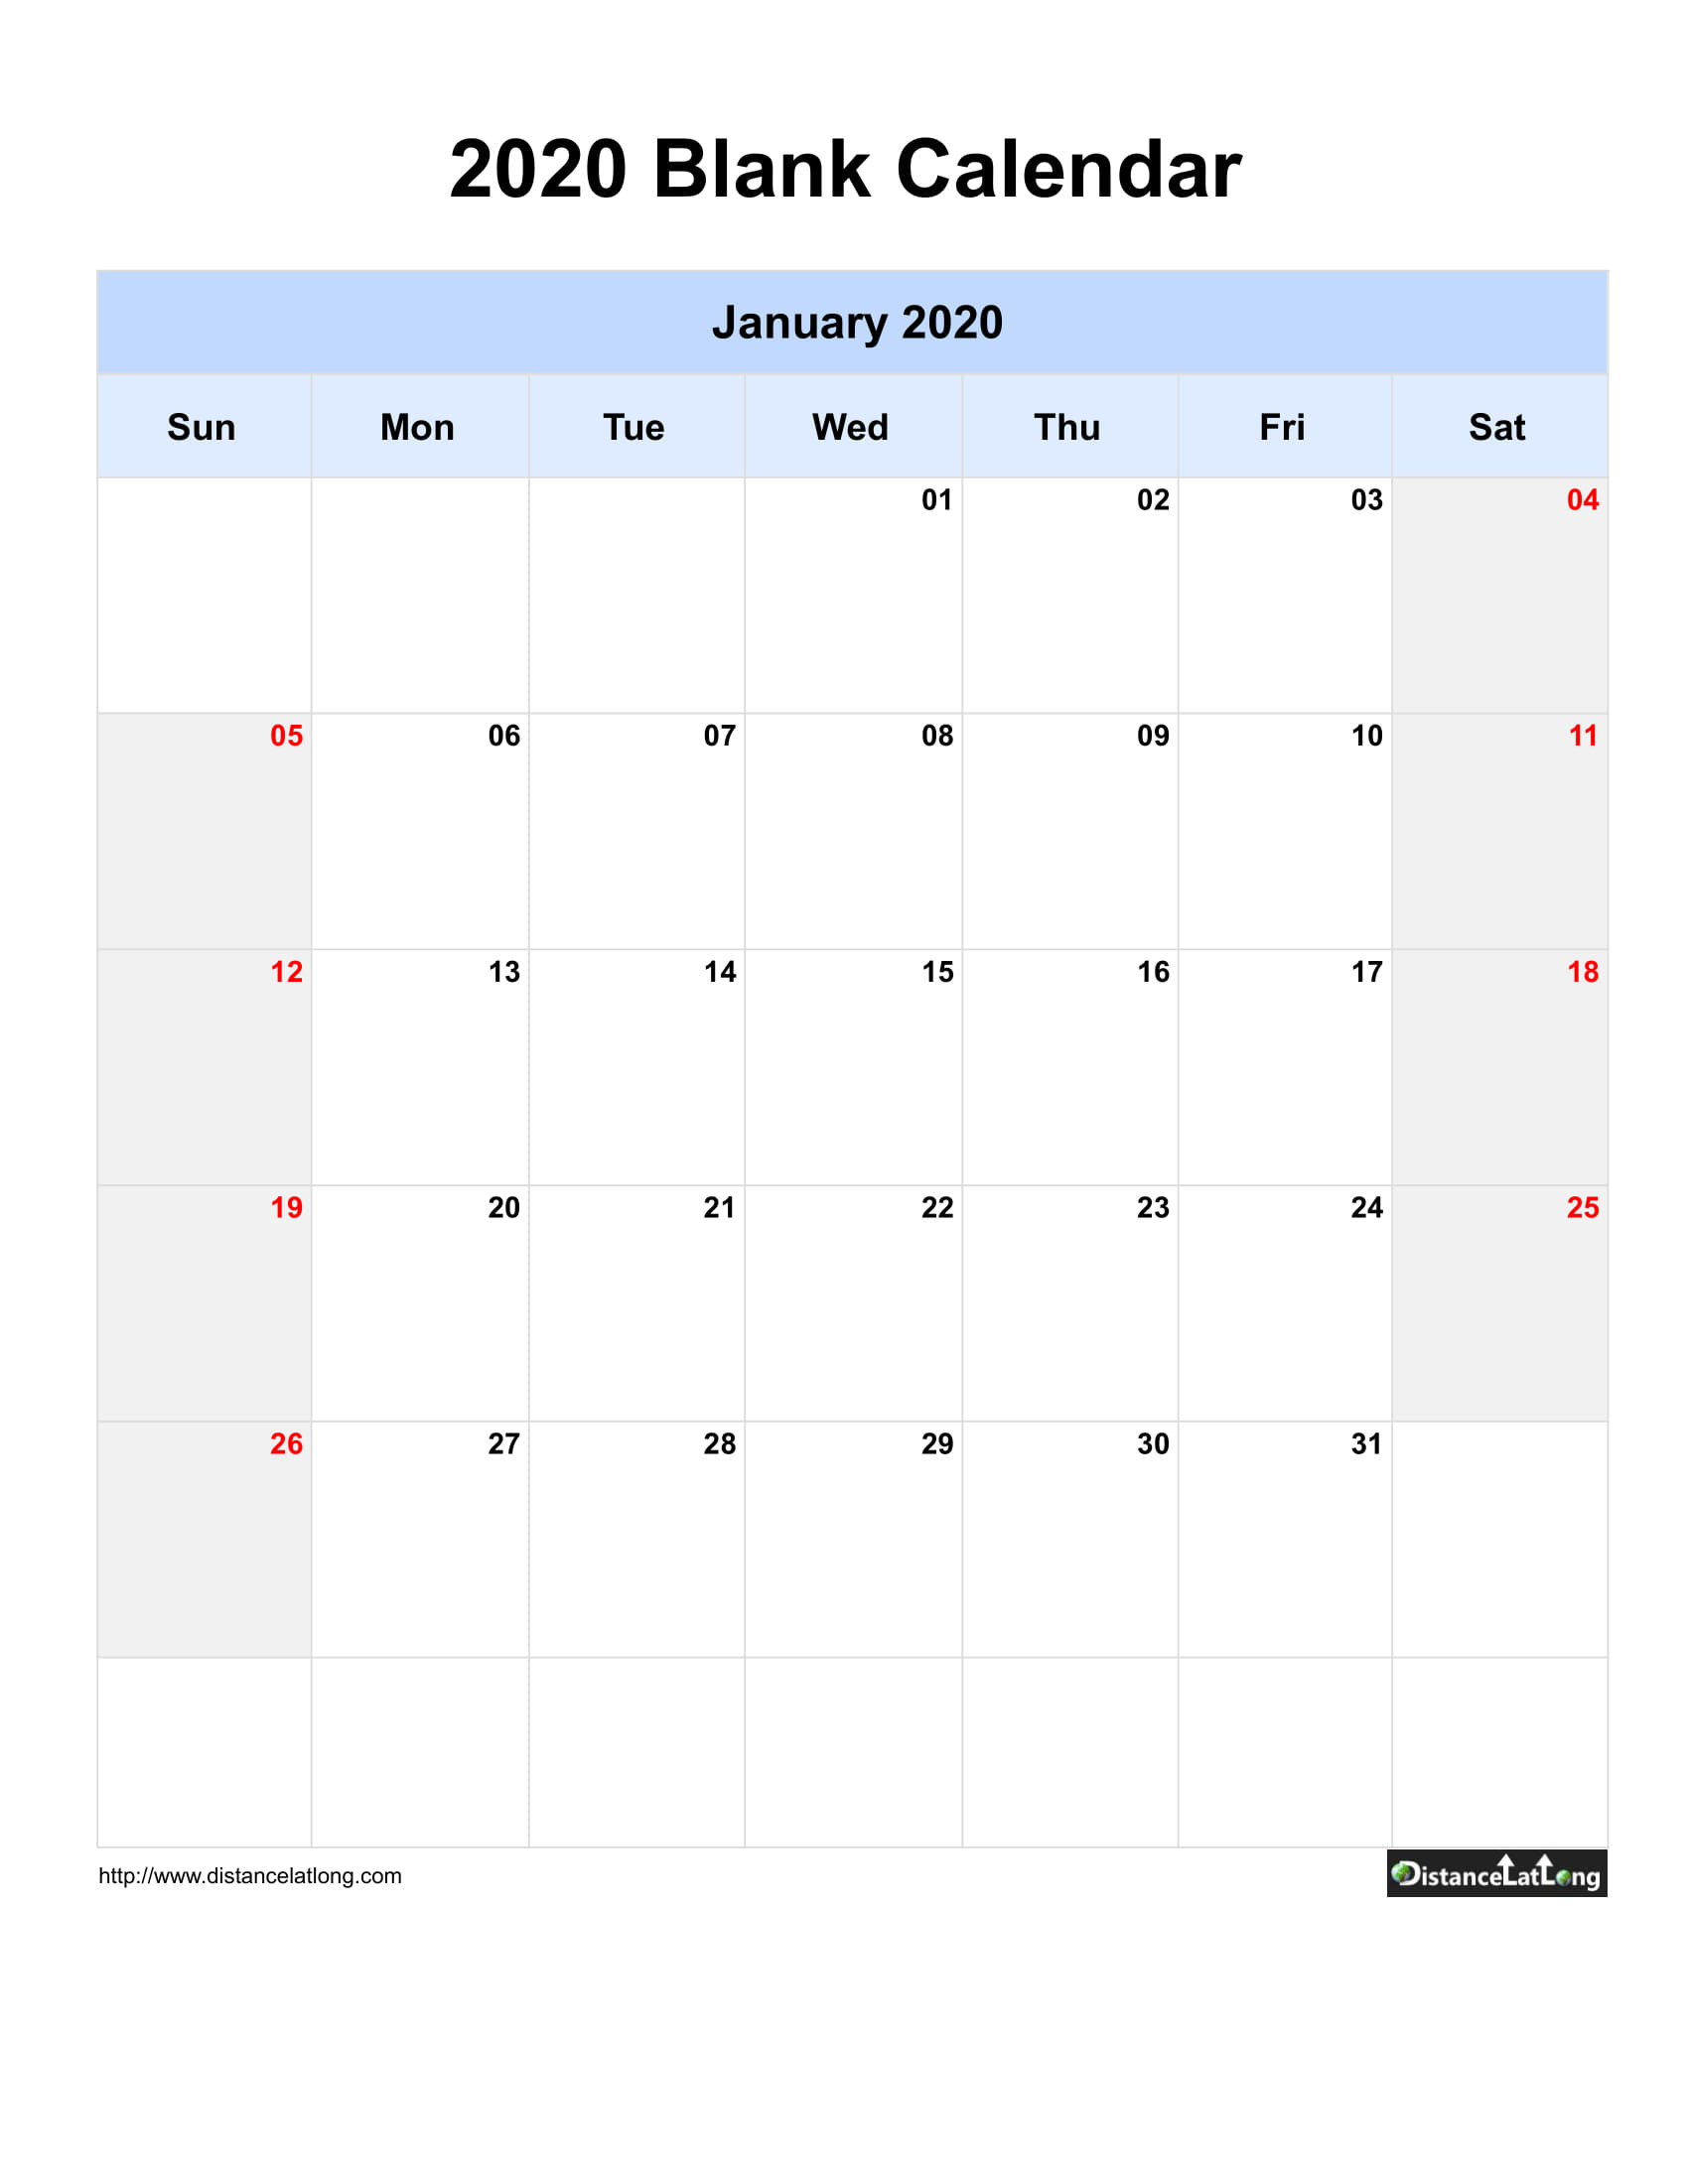 January Calendars For Pdf, Words And Jpg Formats